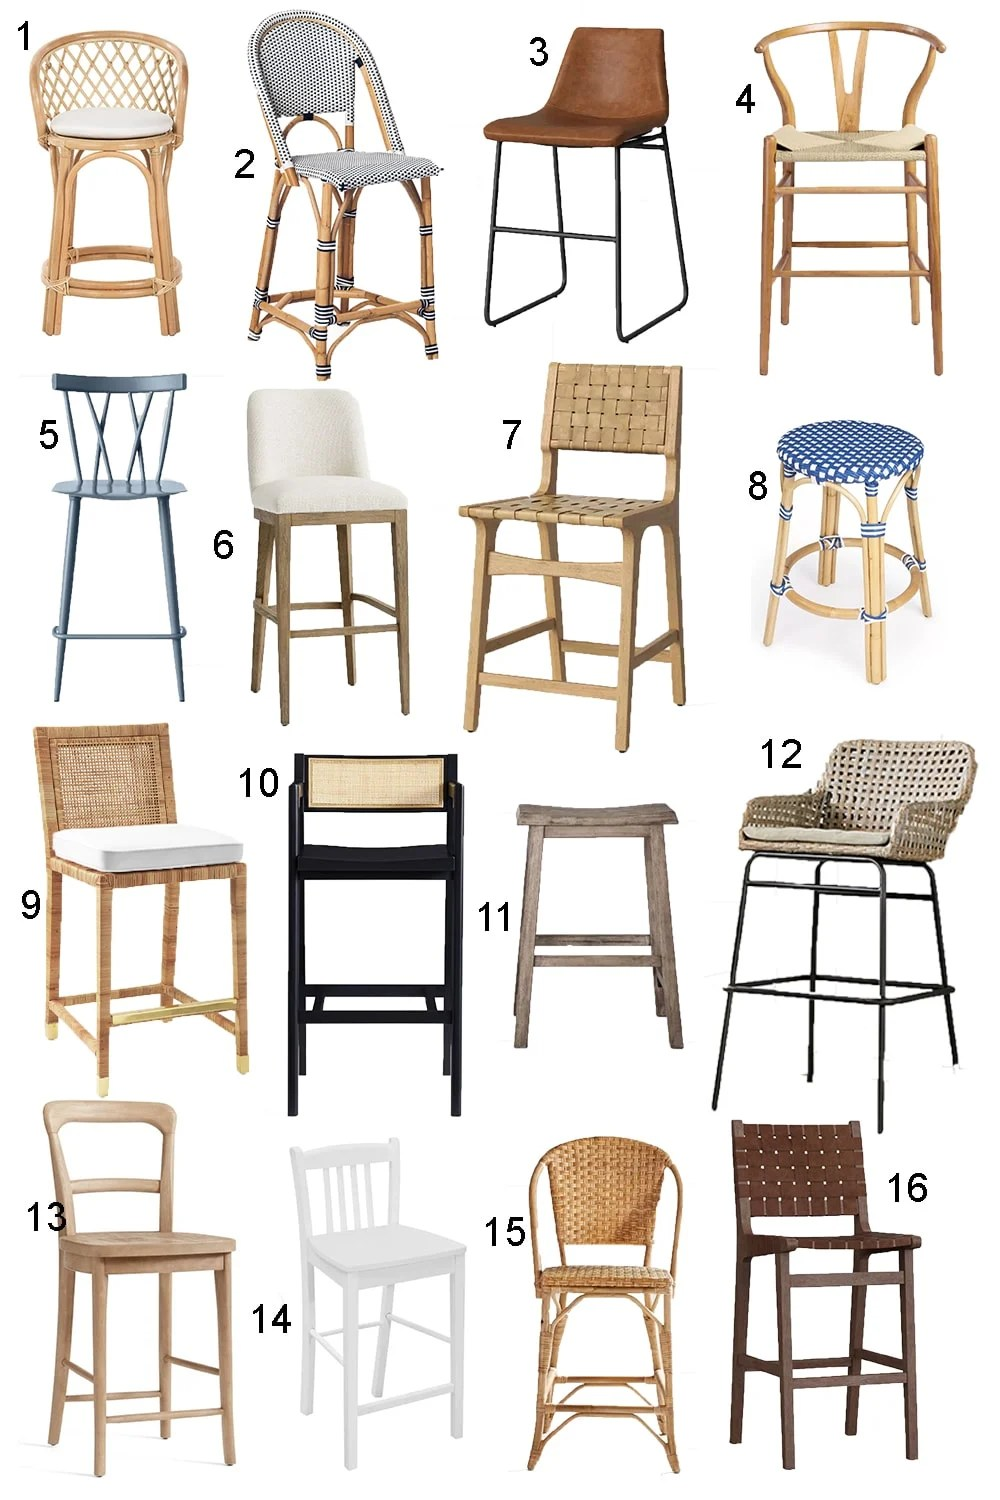 collage of 16 kitchen counter stools and chairs